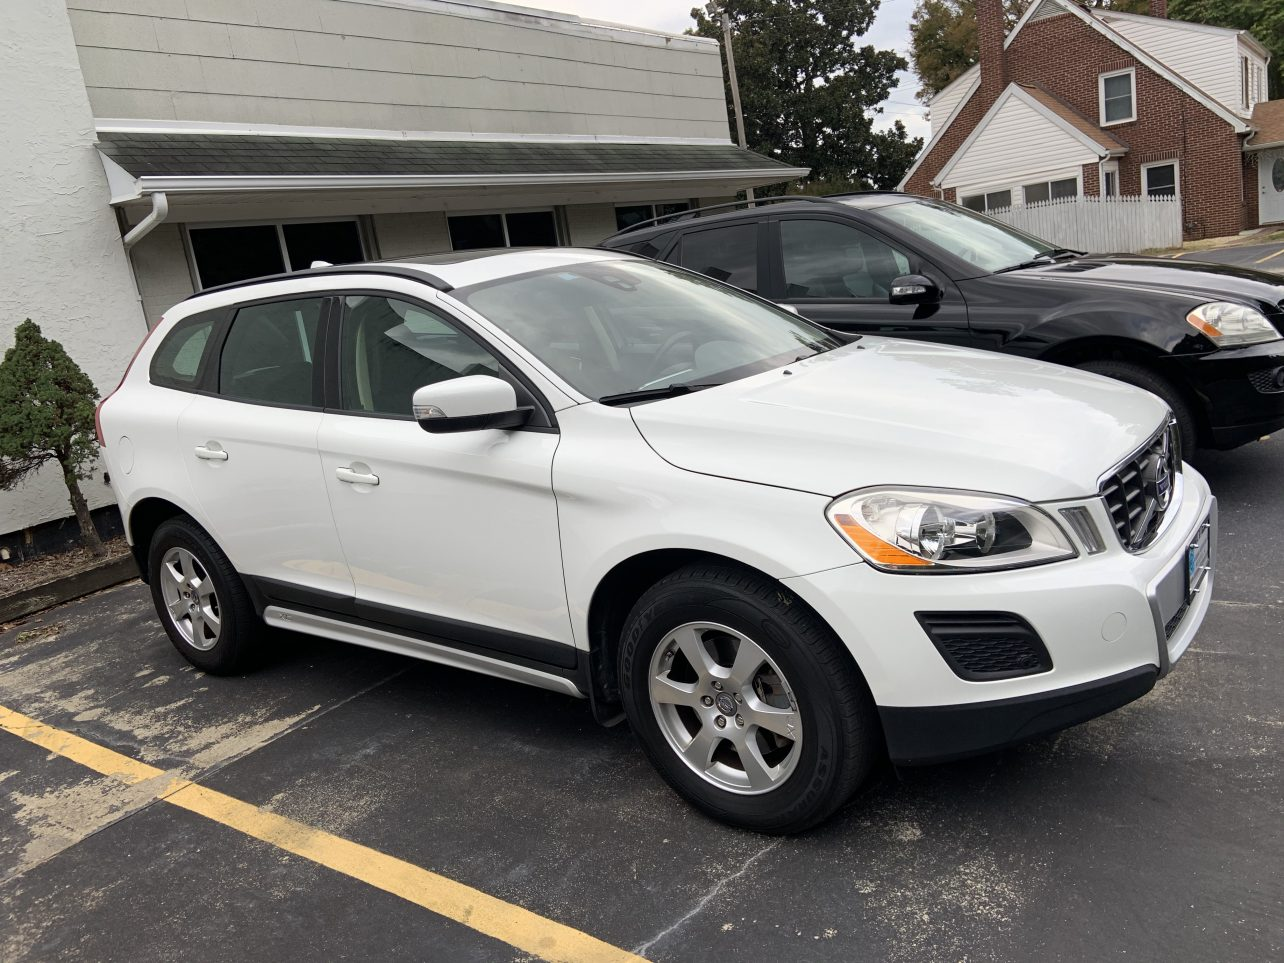 2012 VOLVO XC60 FOR SALE IN ROCK HILL SC